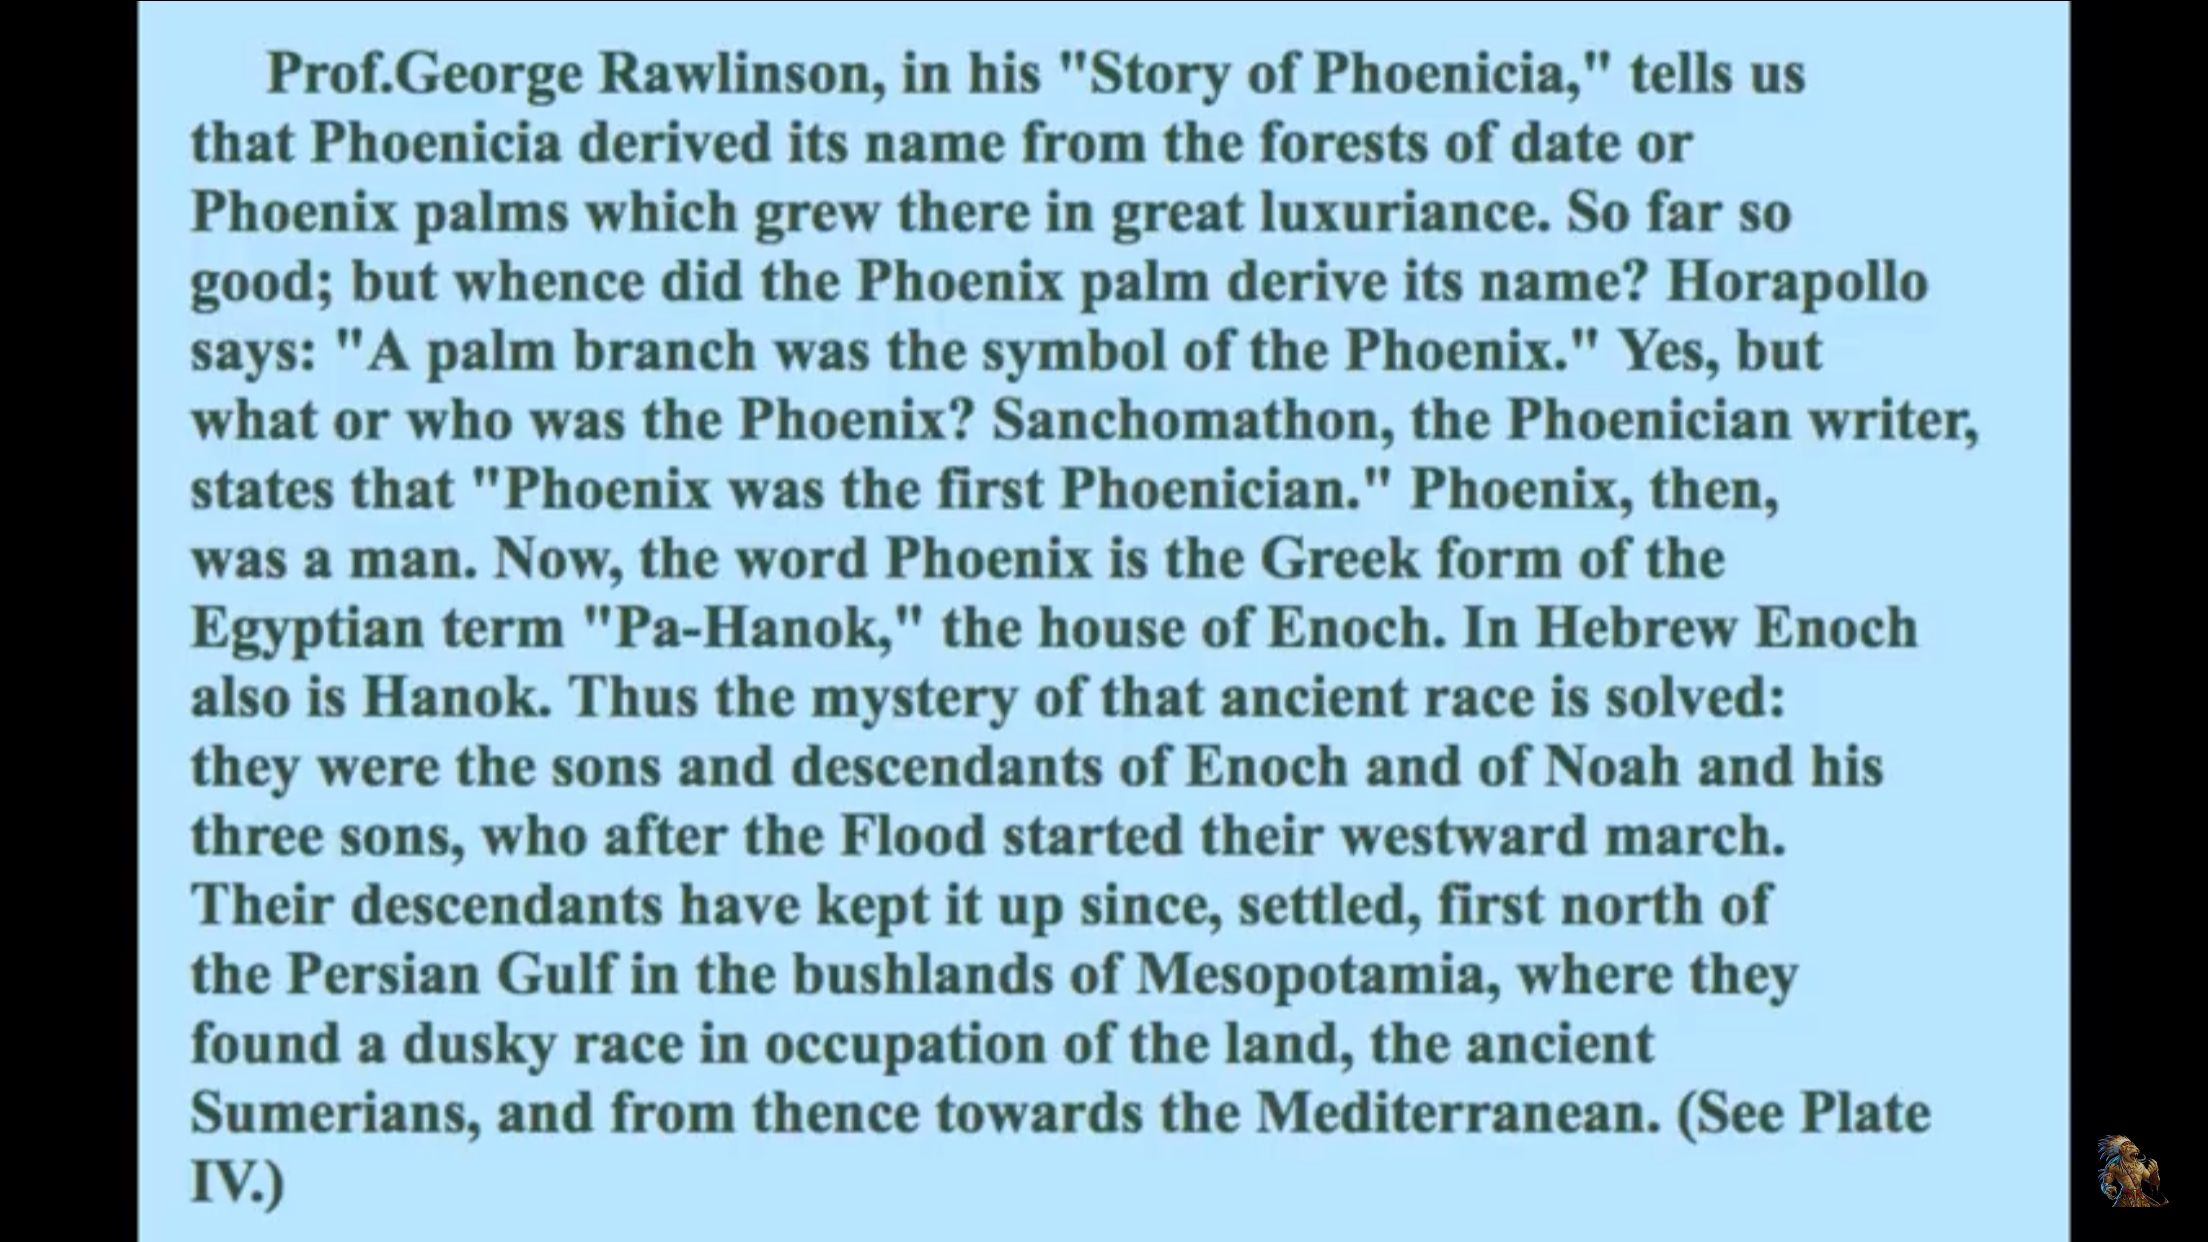 Thoth = Hermes = Phoenix (tradition of cycles of renewal) = Hebrew Enoch = Idris = same person